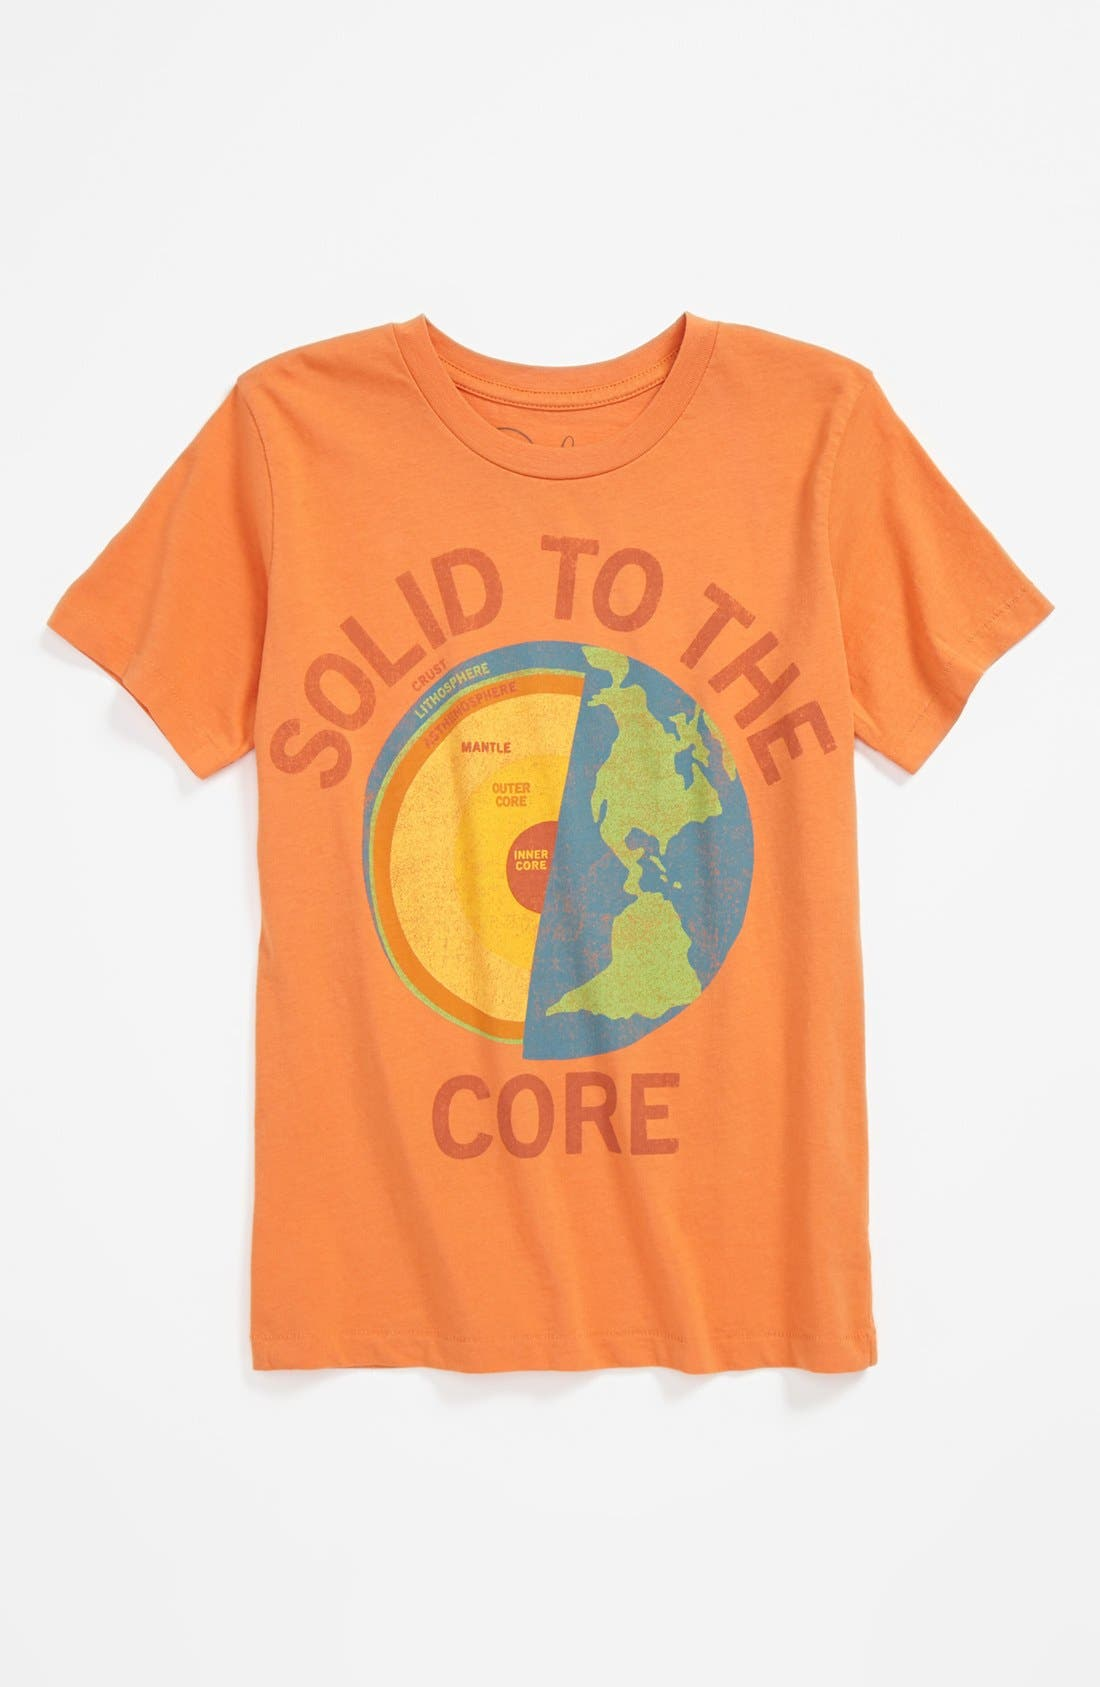 Alternate Image 1 Selected - Peek 'Solid to the Core' T-Shirt (Baby Boys)